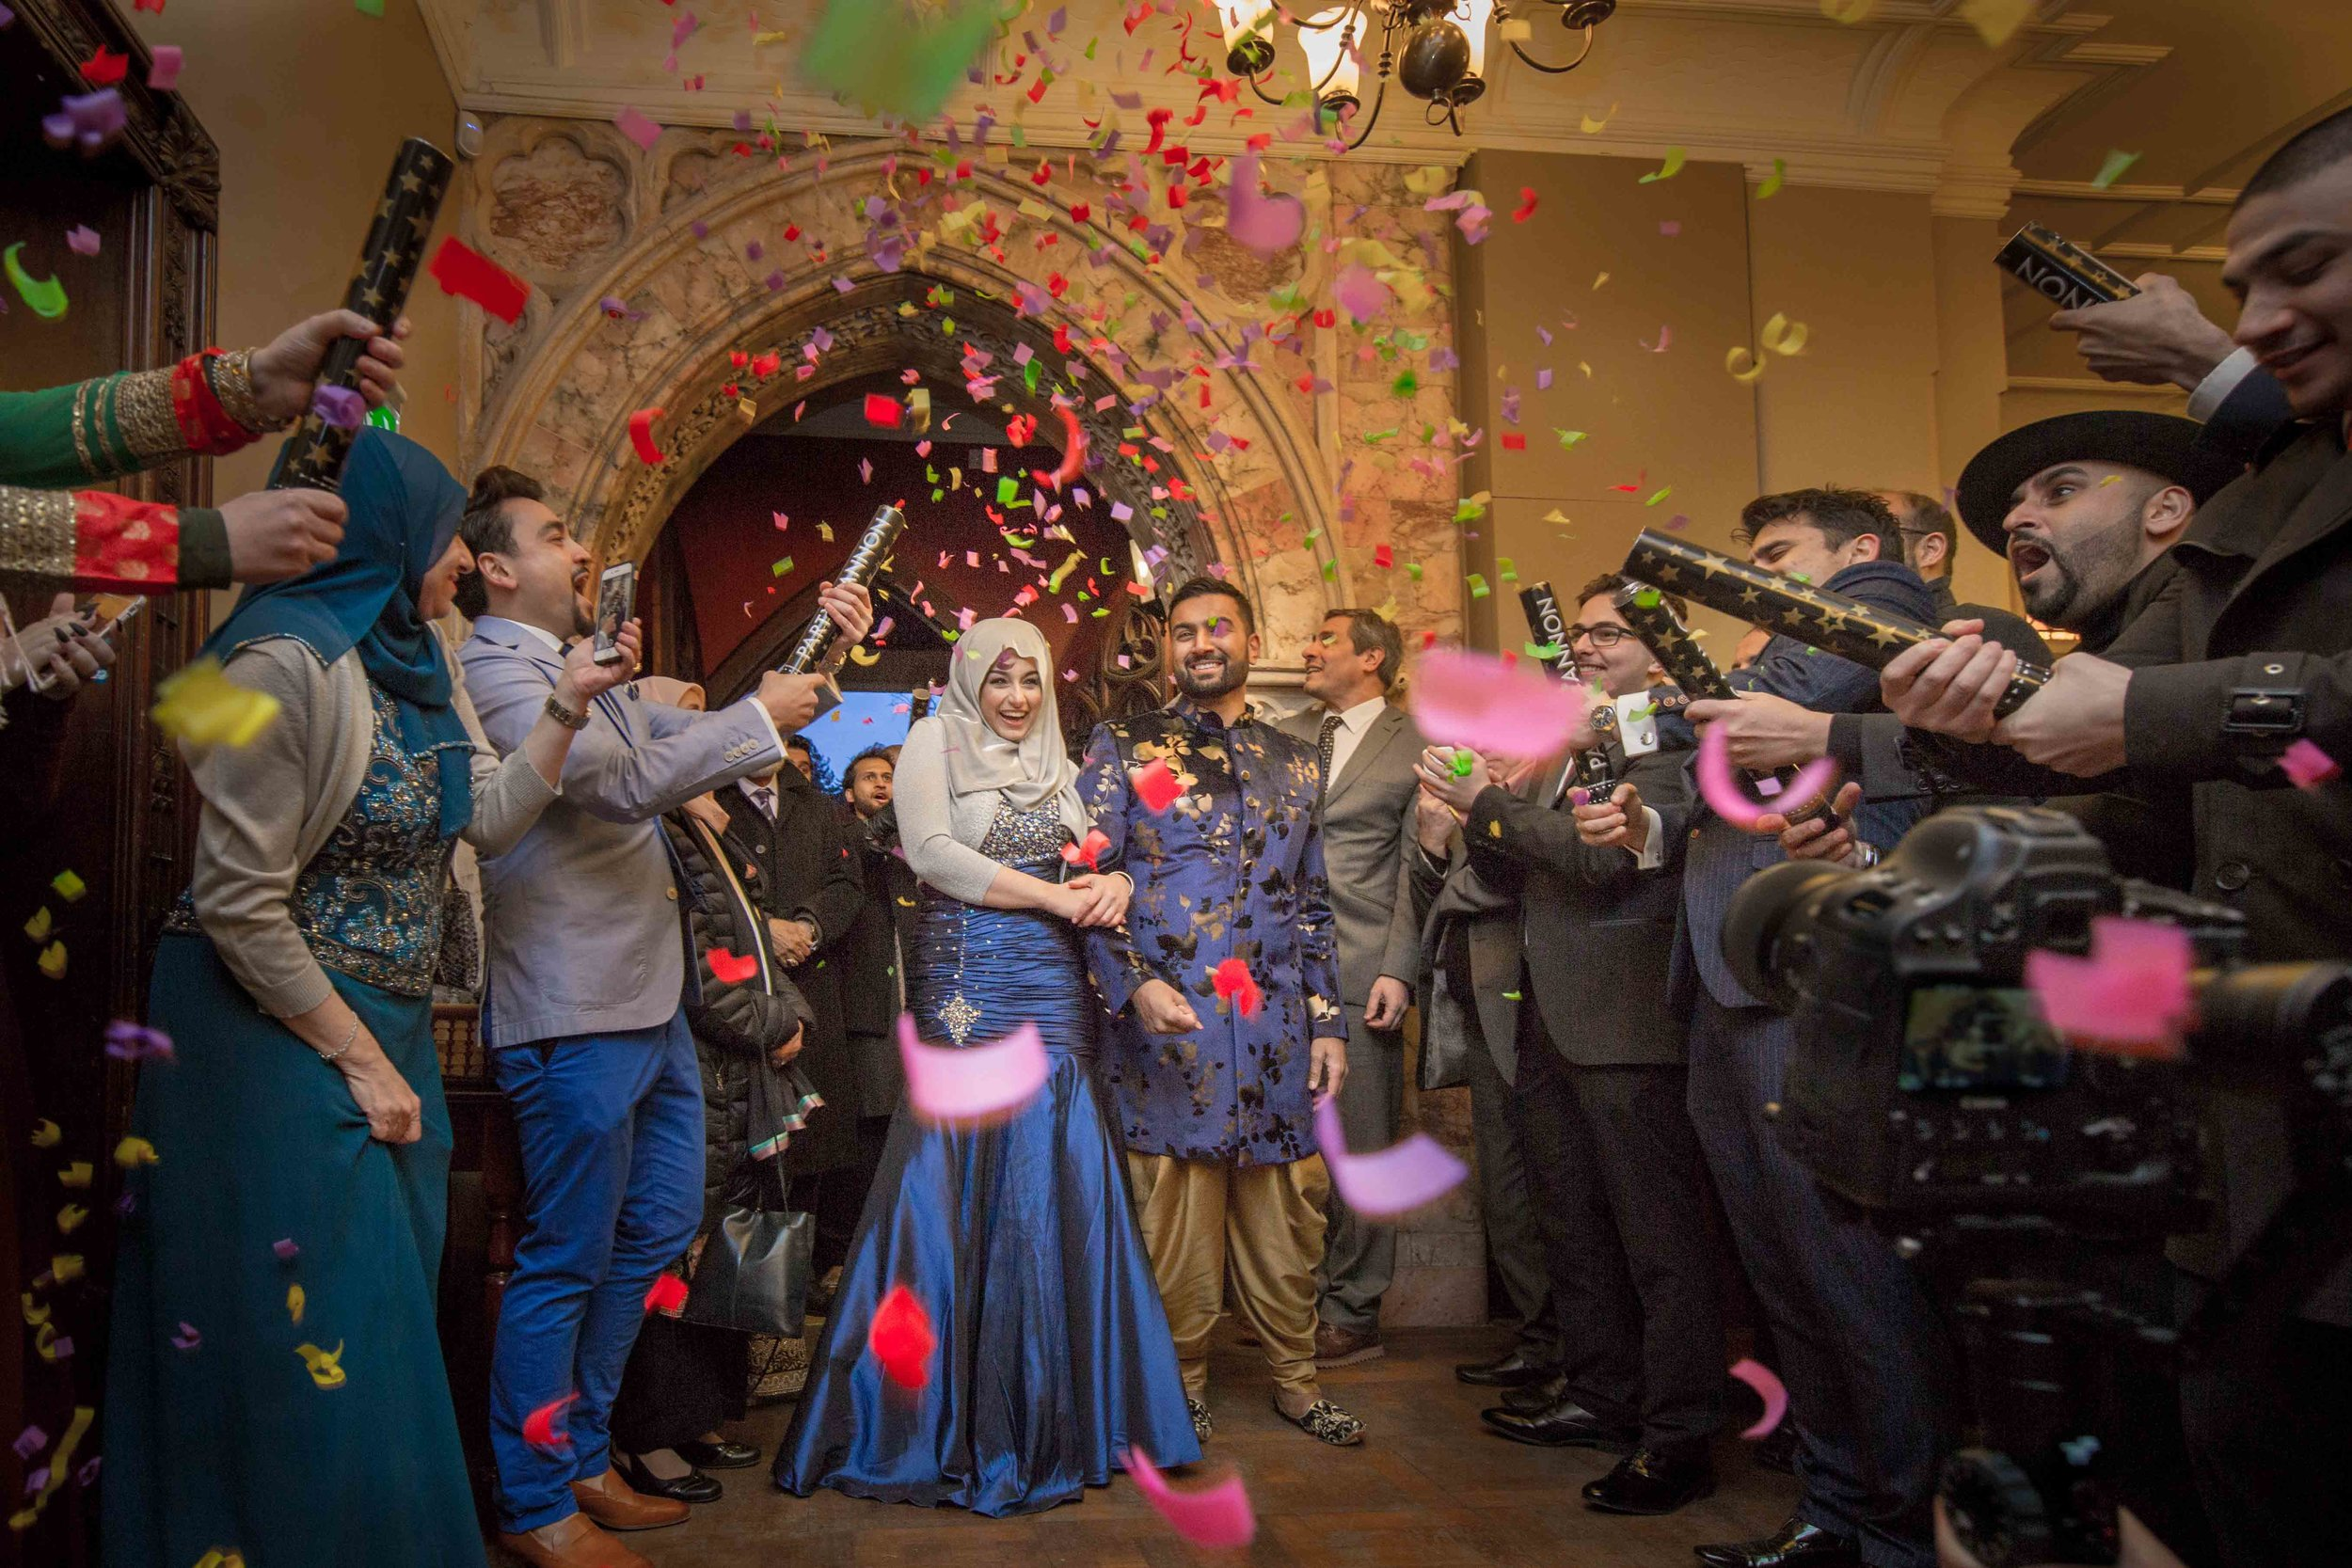 Indian-Palestinian Wedding - Cardiff, Wales